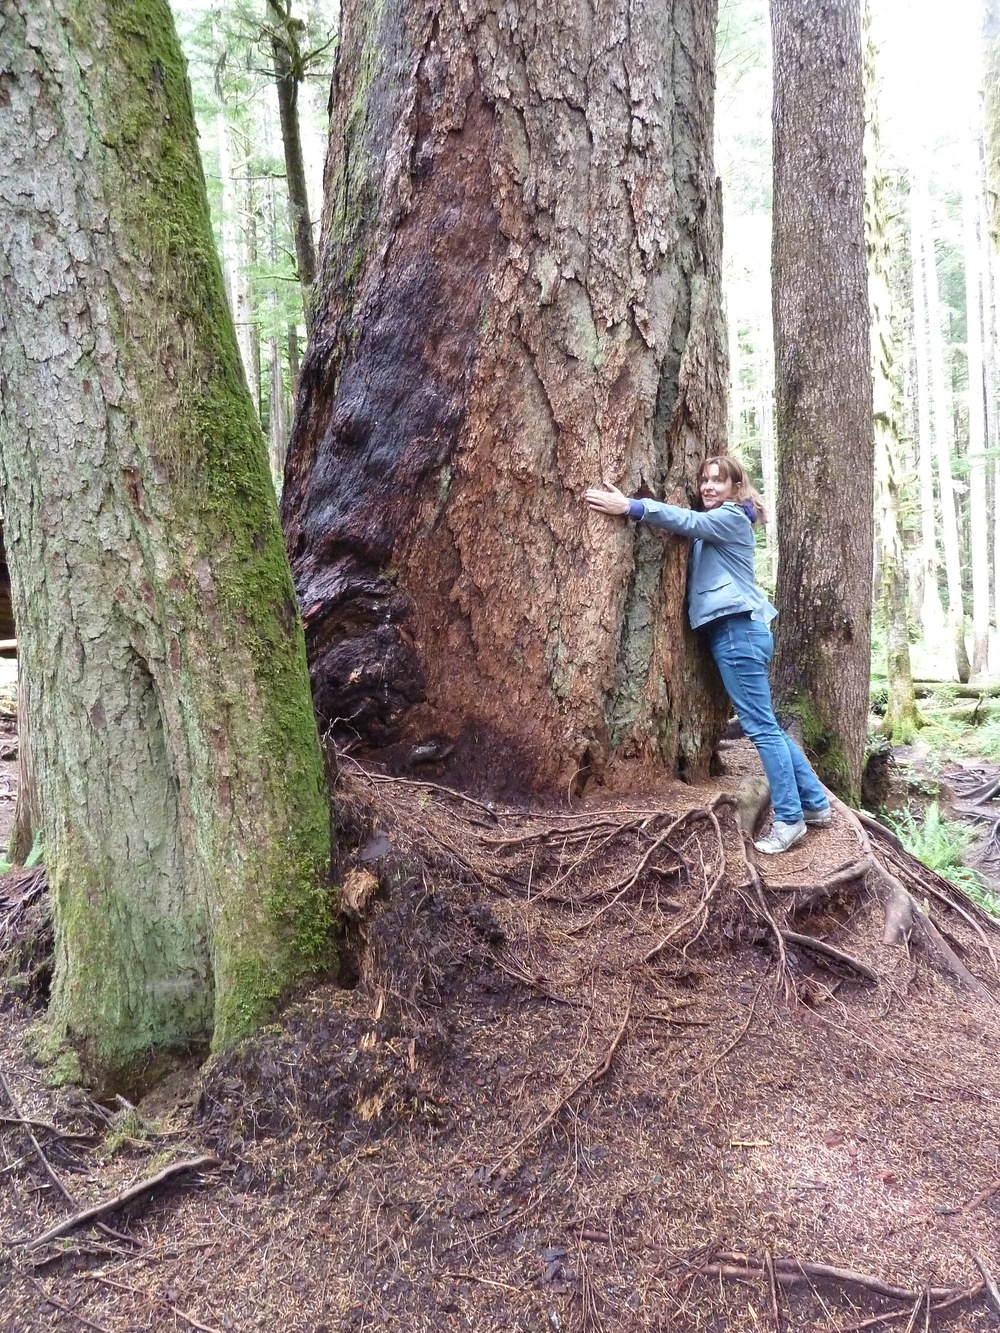 Me, hugging a Very Large Tree in old growth temperate rainforest near Port Renfrew, Vancouver Island.